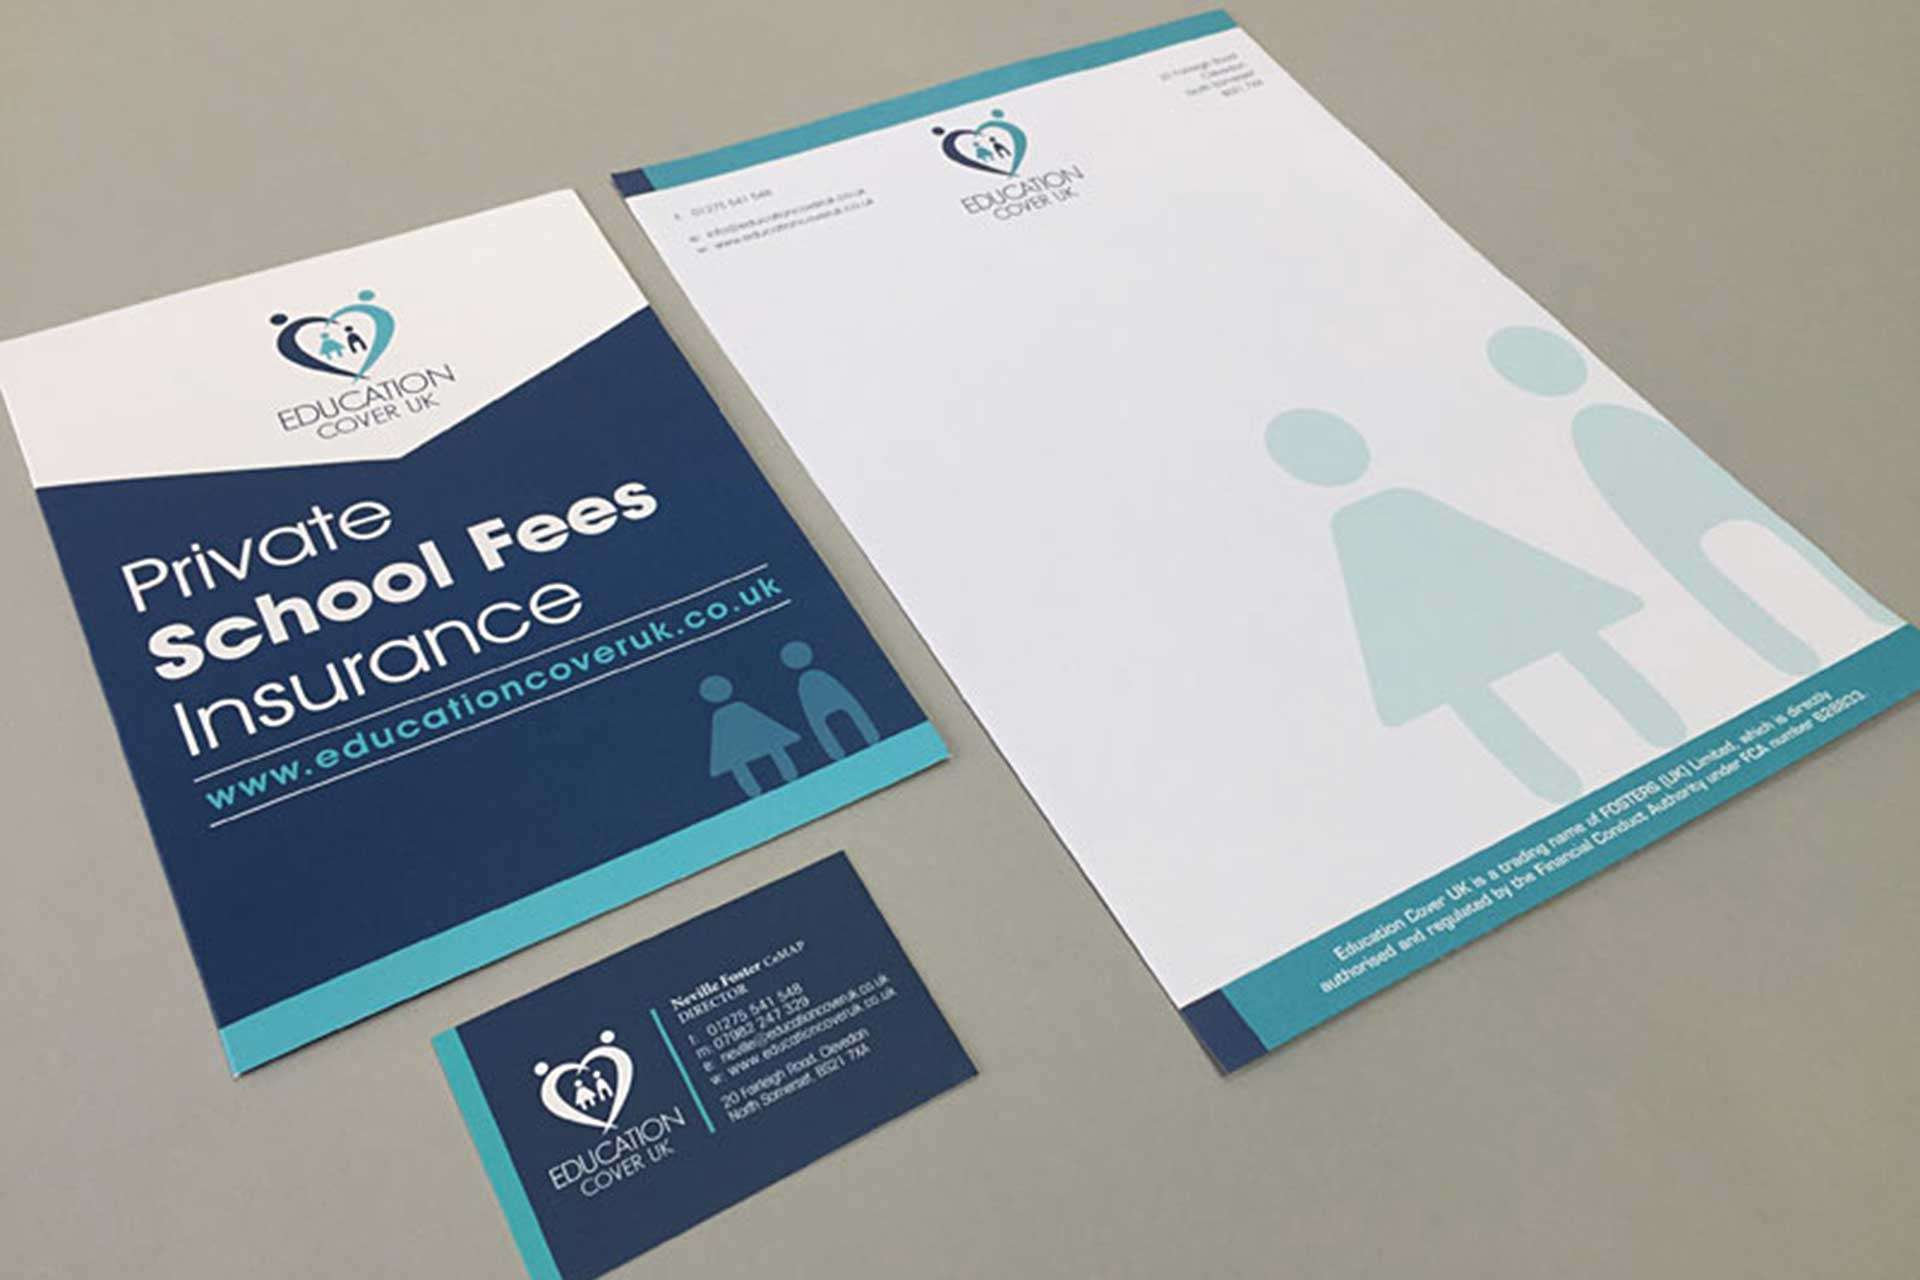 Stationery design for educational insurance company based in Clevedon, North Somerset